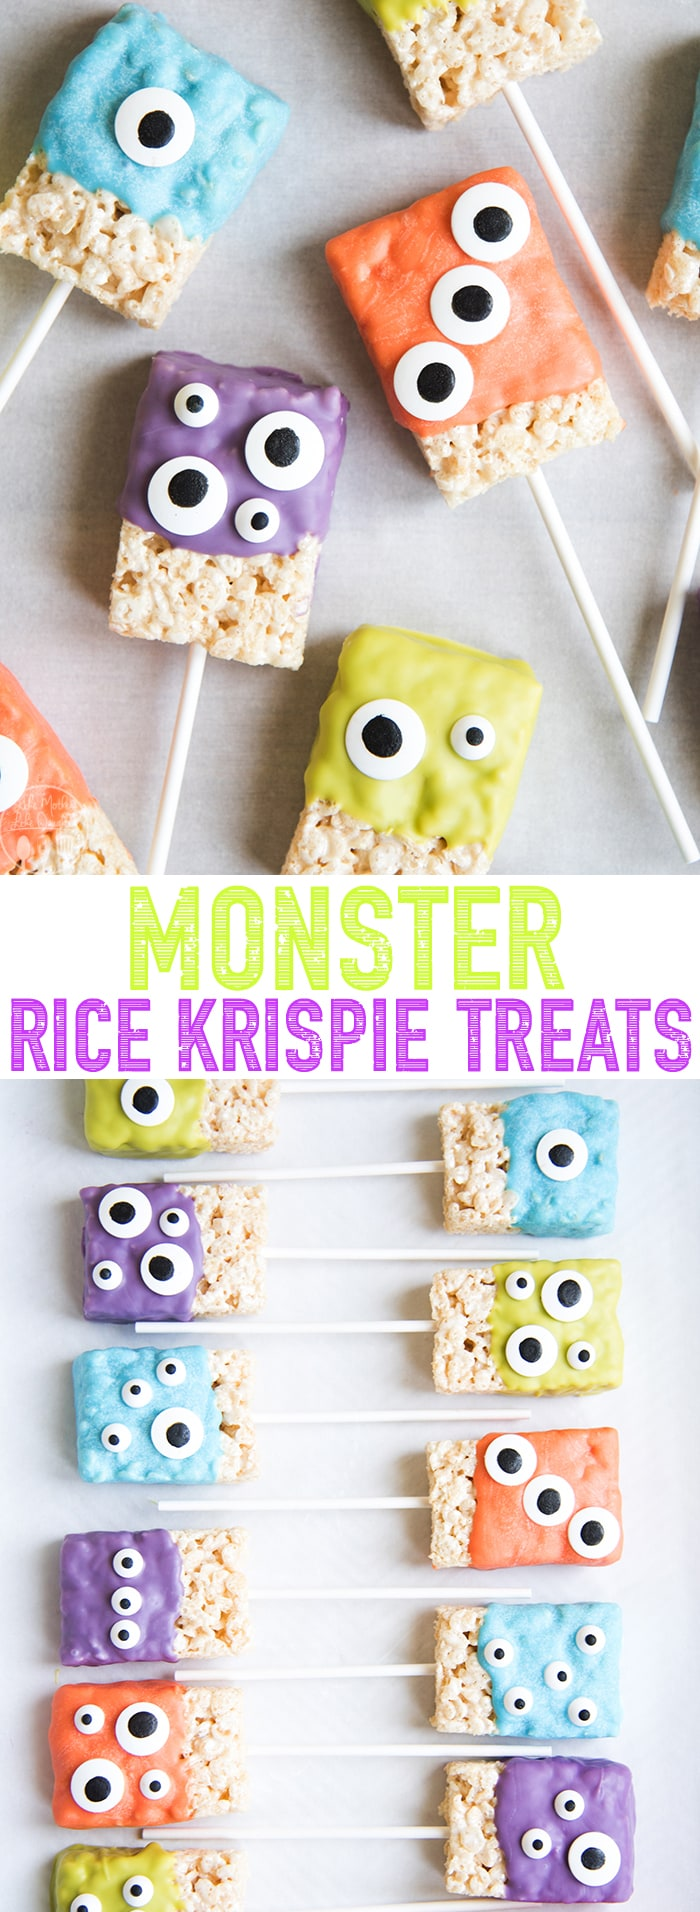 These monster rice krispie treats are the such a cute and festive Halloween treat! Made with only 3 ingredients these Halloween rice krispie treats are so easy to make, and great for kids who love to help in the kitchen!